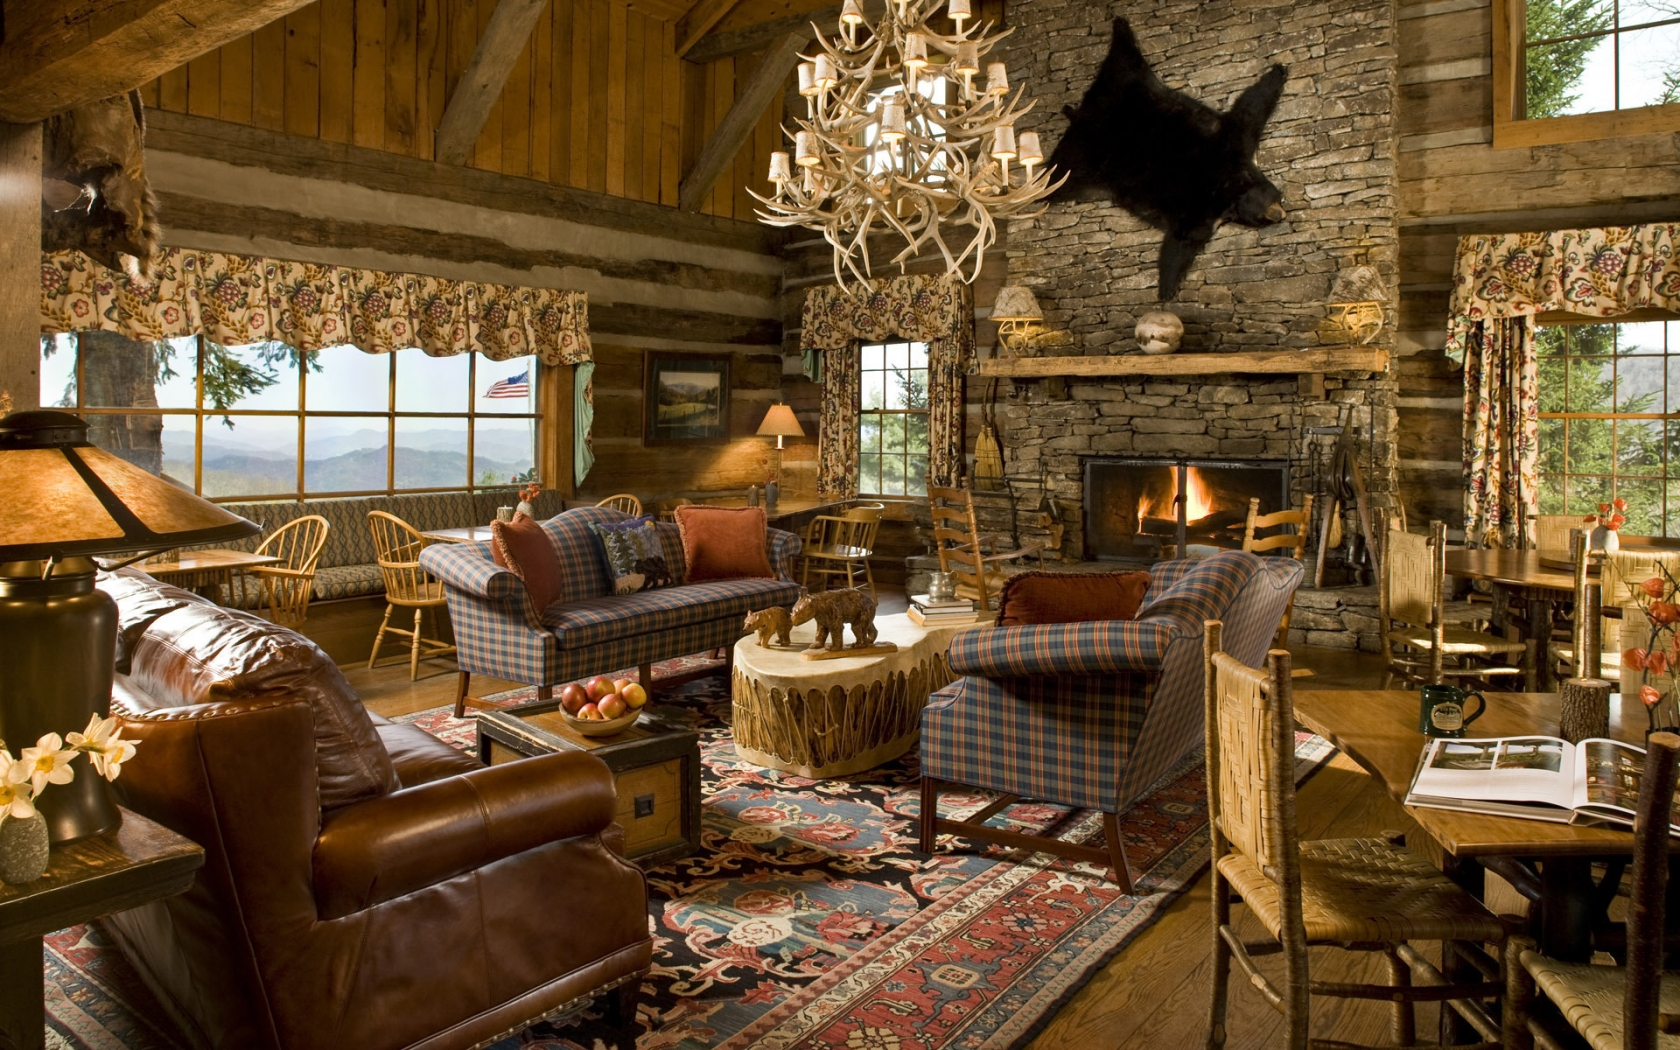 Rustic Decorating Ideas (View 4 of 10)